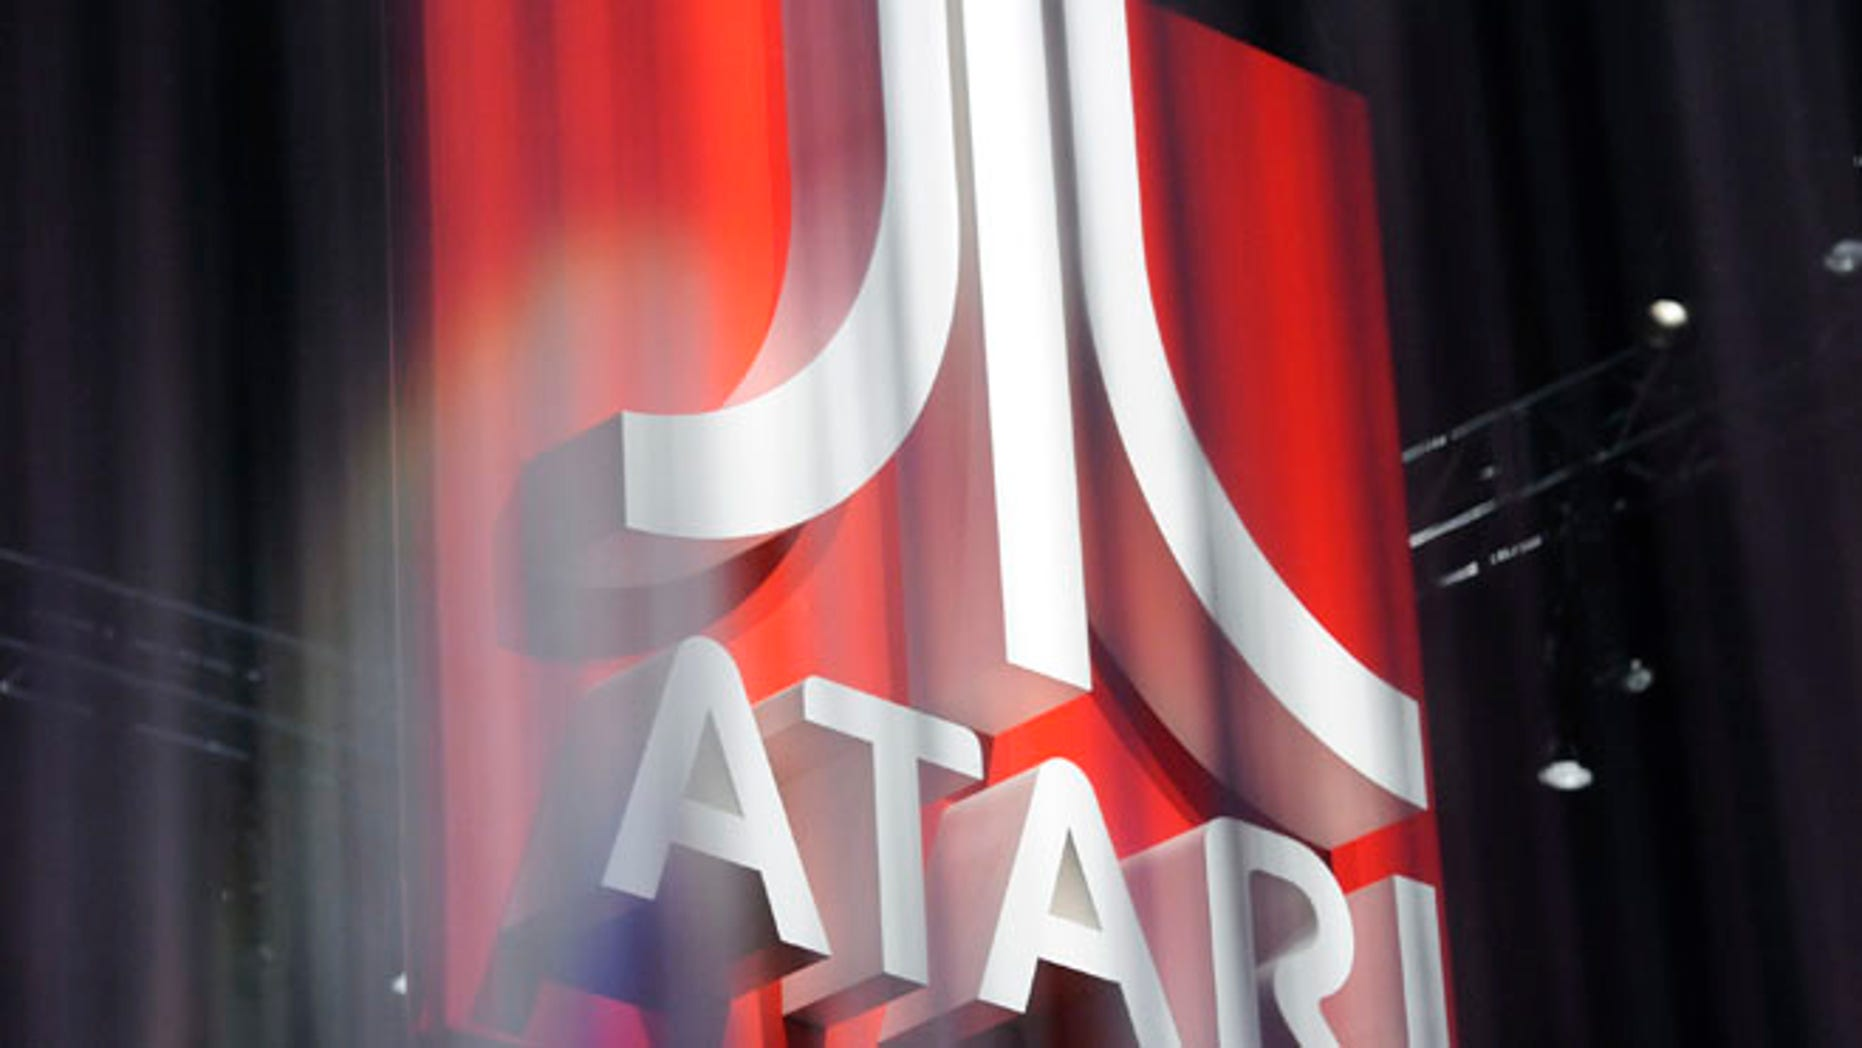 June 8, 2011: The Atari booth is pictured during E3, the Electronic Entertainment Expo, in Los Angeles.